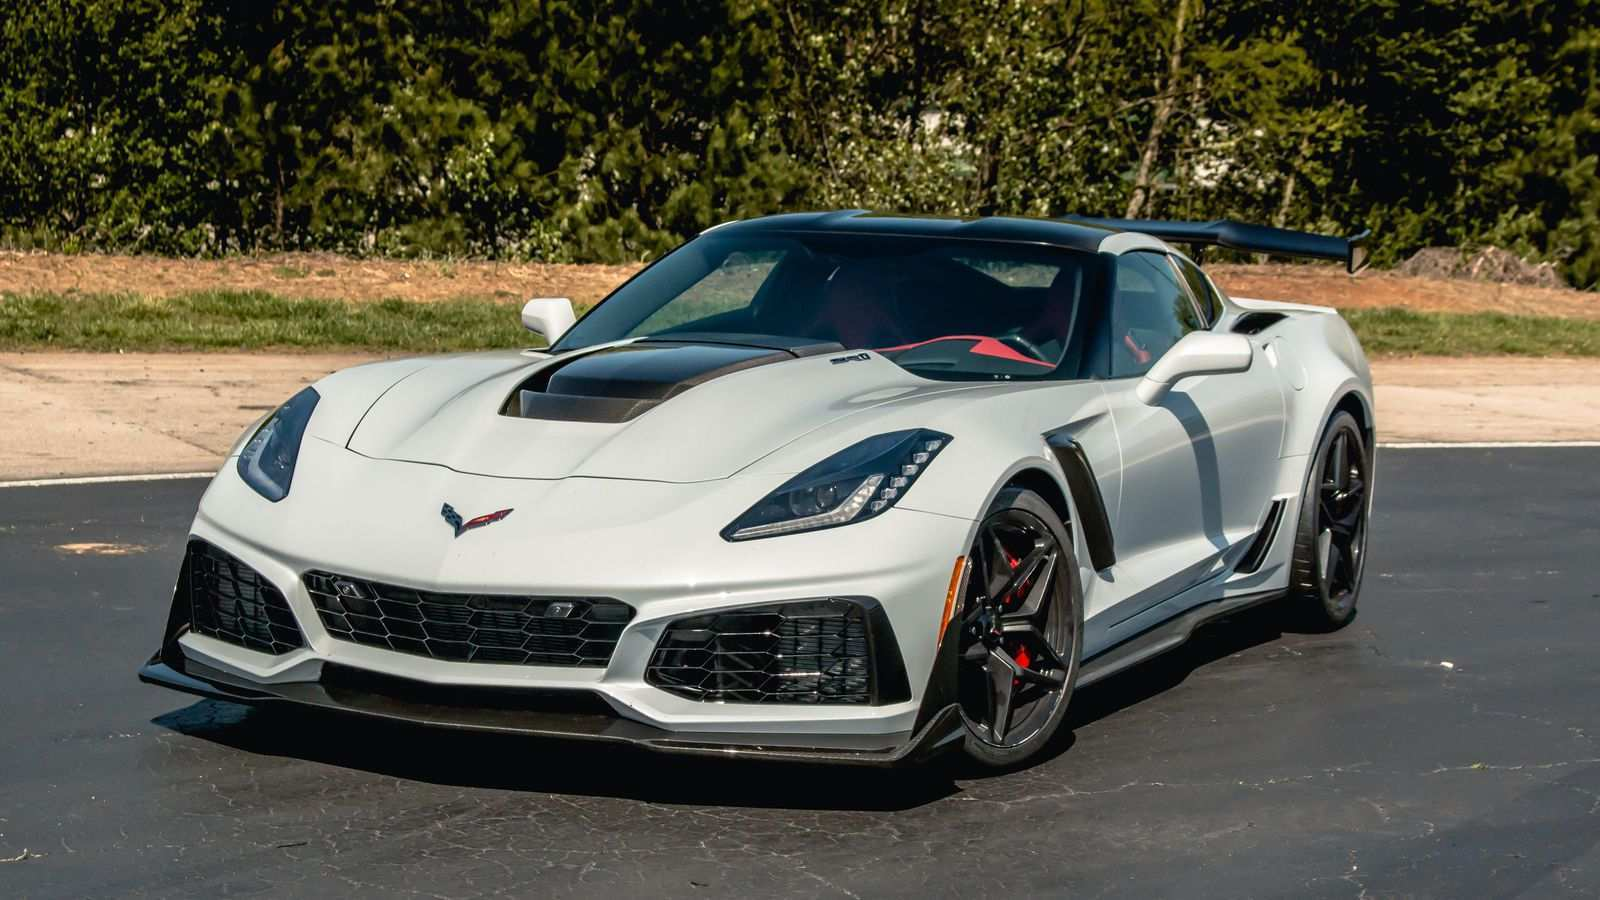 71 Gallery of 2019 Chevrolet Corvette Zr1 Redesign for 2019 Chevrolet Corvette Zr1